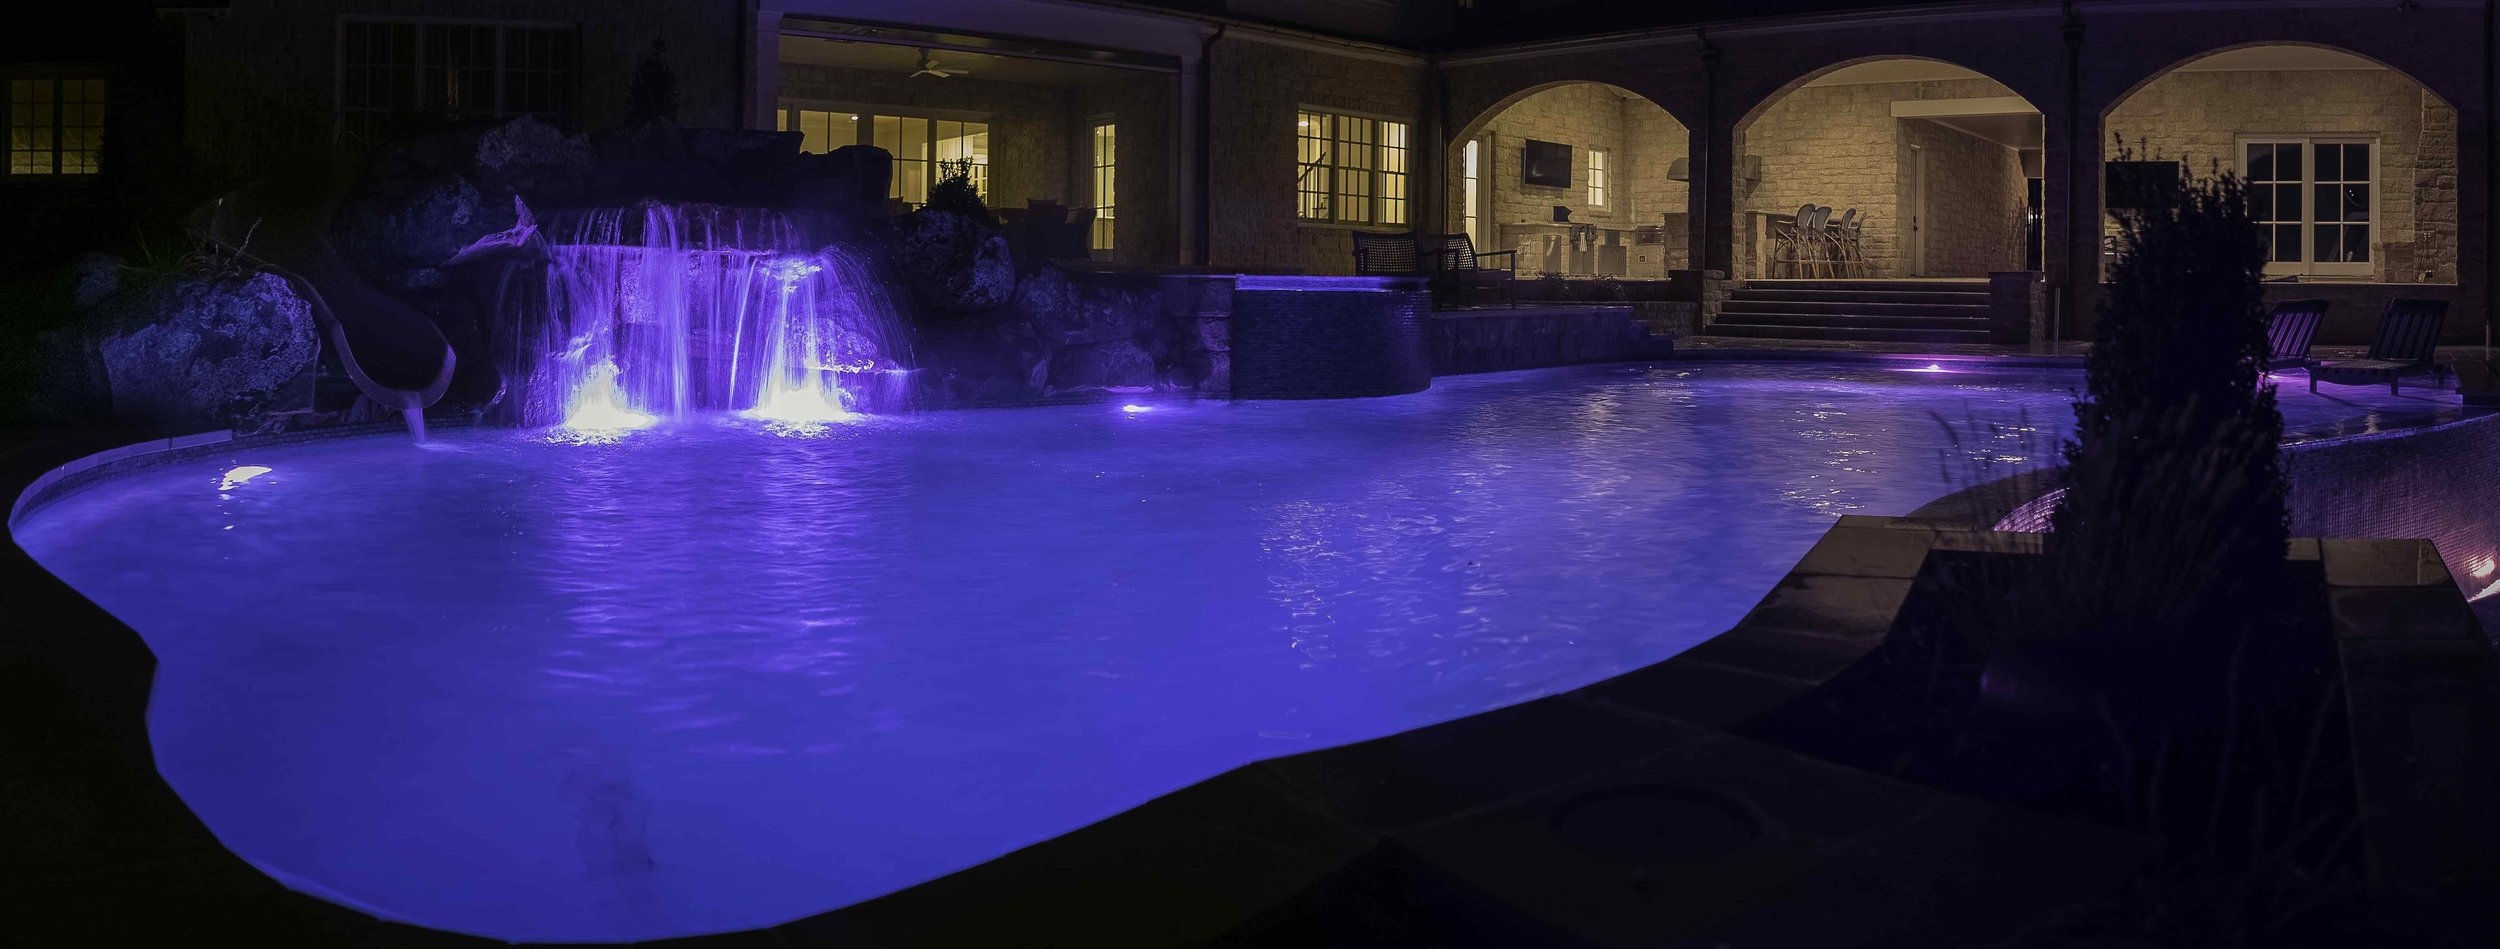 Myers Pool | Aquascape Pools | Edmond | evening | color | ANDREW G | super wide panorama | Print Ready - 03.jpg